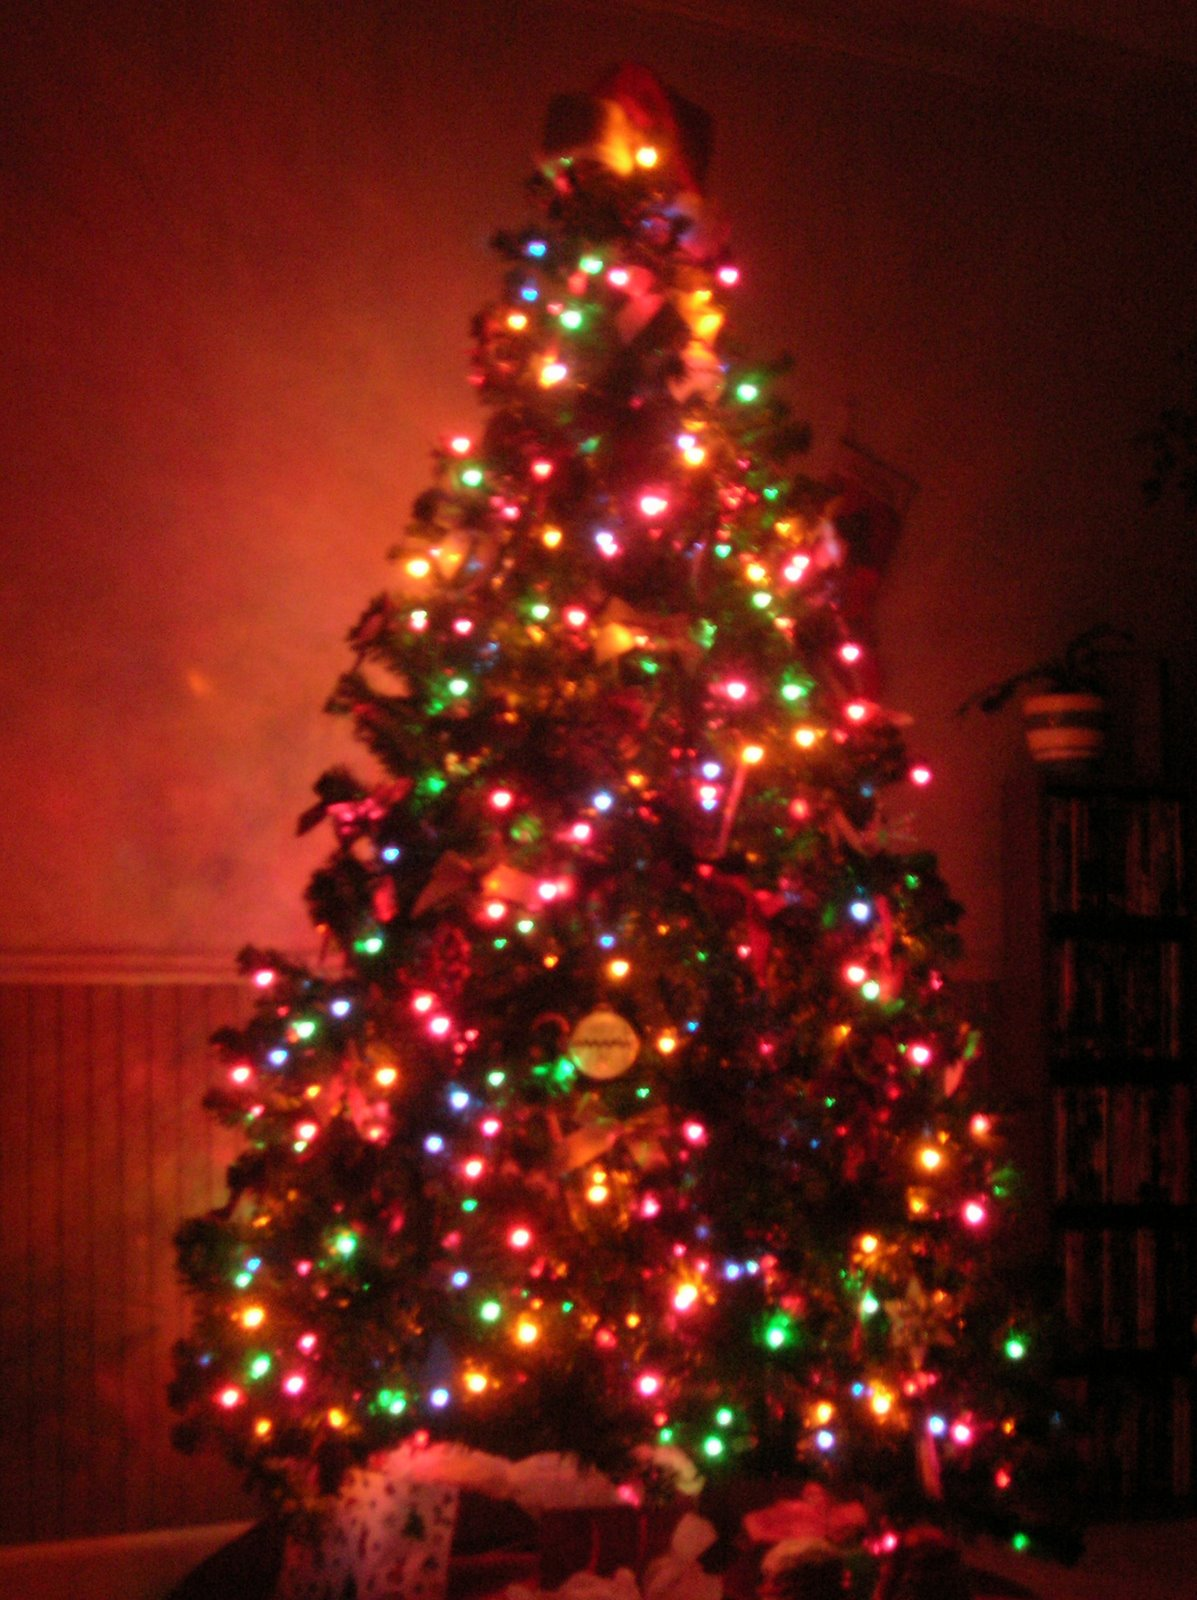 45 Colorful Christmas Tree Decorations Ideas Decoration Love